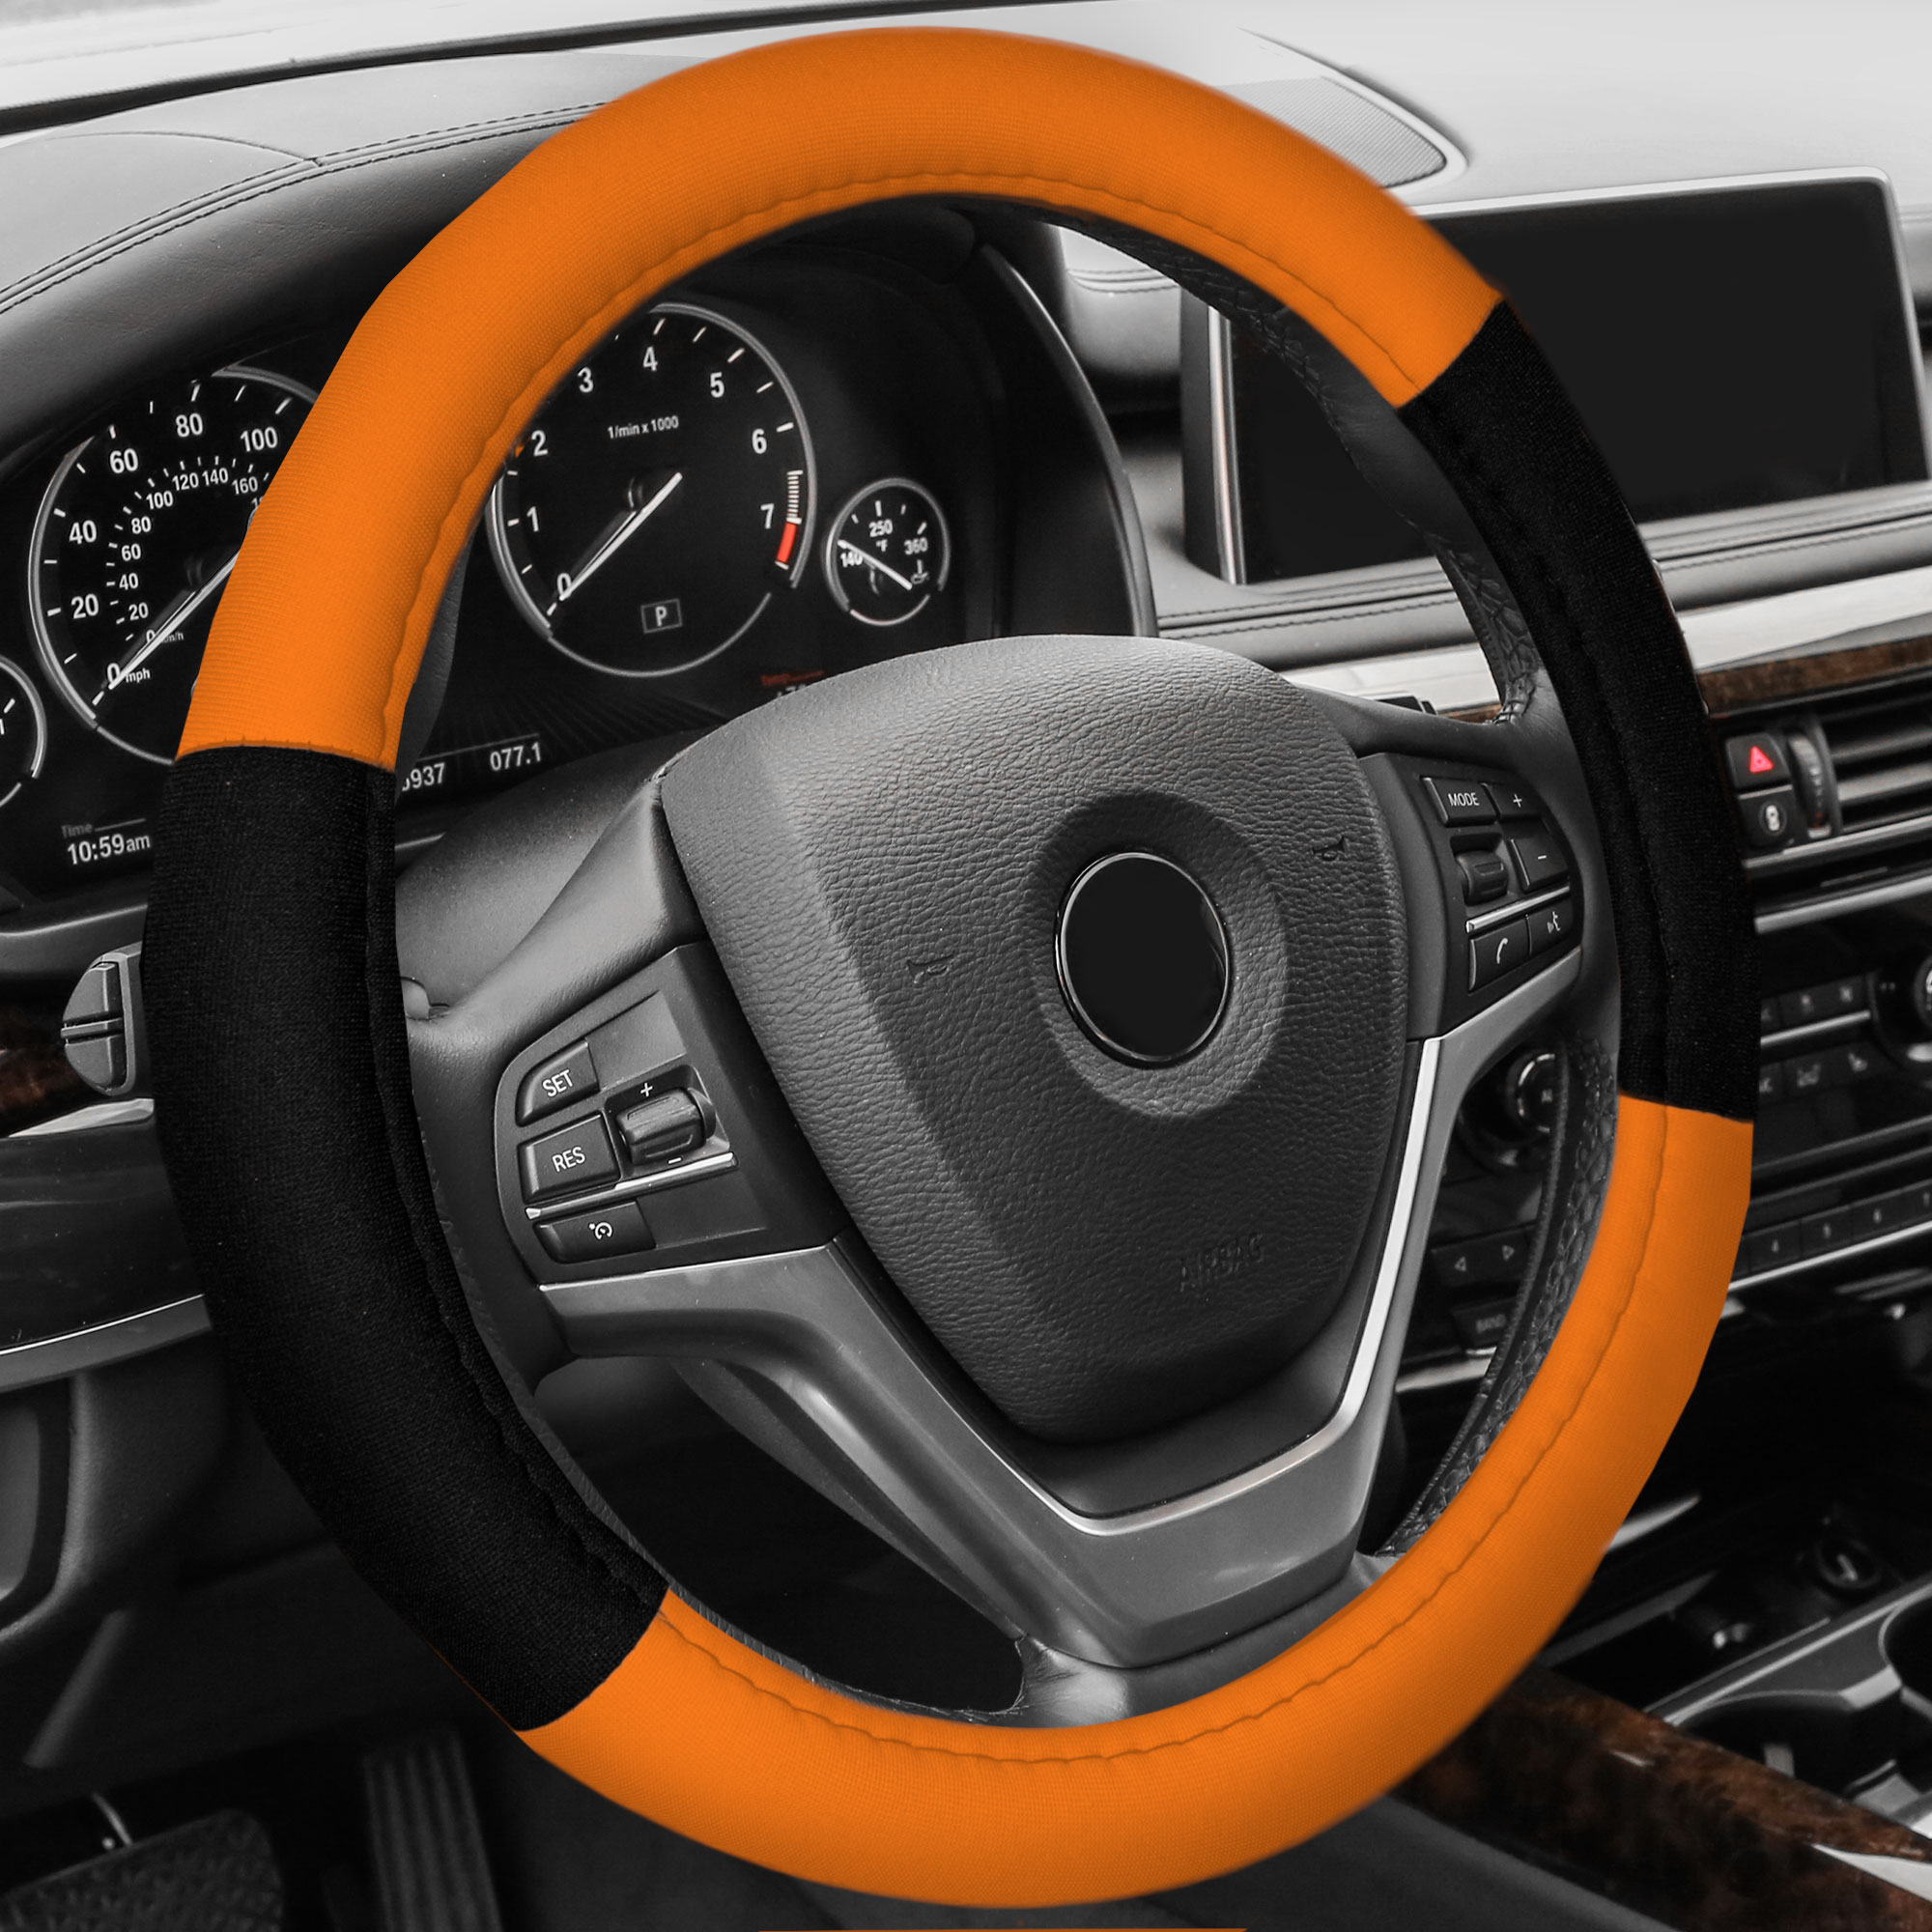 FH Group Cloth Steering Wheel Cover for Sedan, SUV, Van, Cloth Steering Wheel Cover, Orange Black